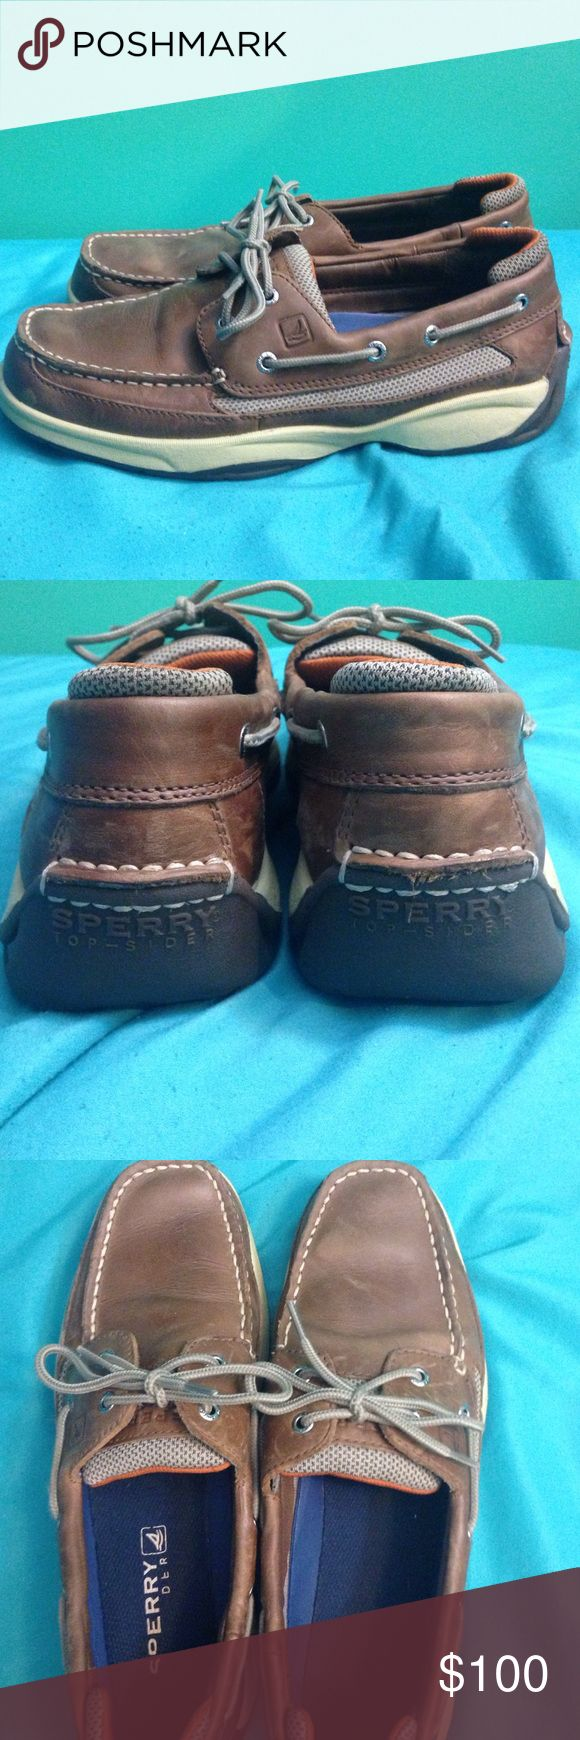 Men's Sperrys Mens's Sperrys. Look like new, worn only a few times. Clean and very little markings on the leather. Like-new condition!! Offers accepted Sperry Top-Sider Shoes Boat Shoes